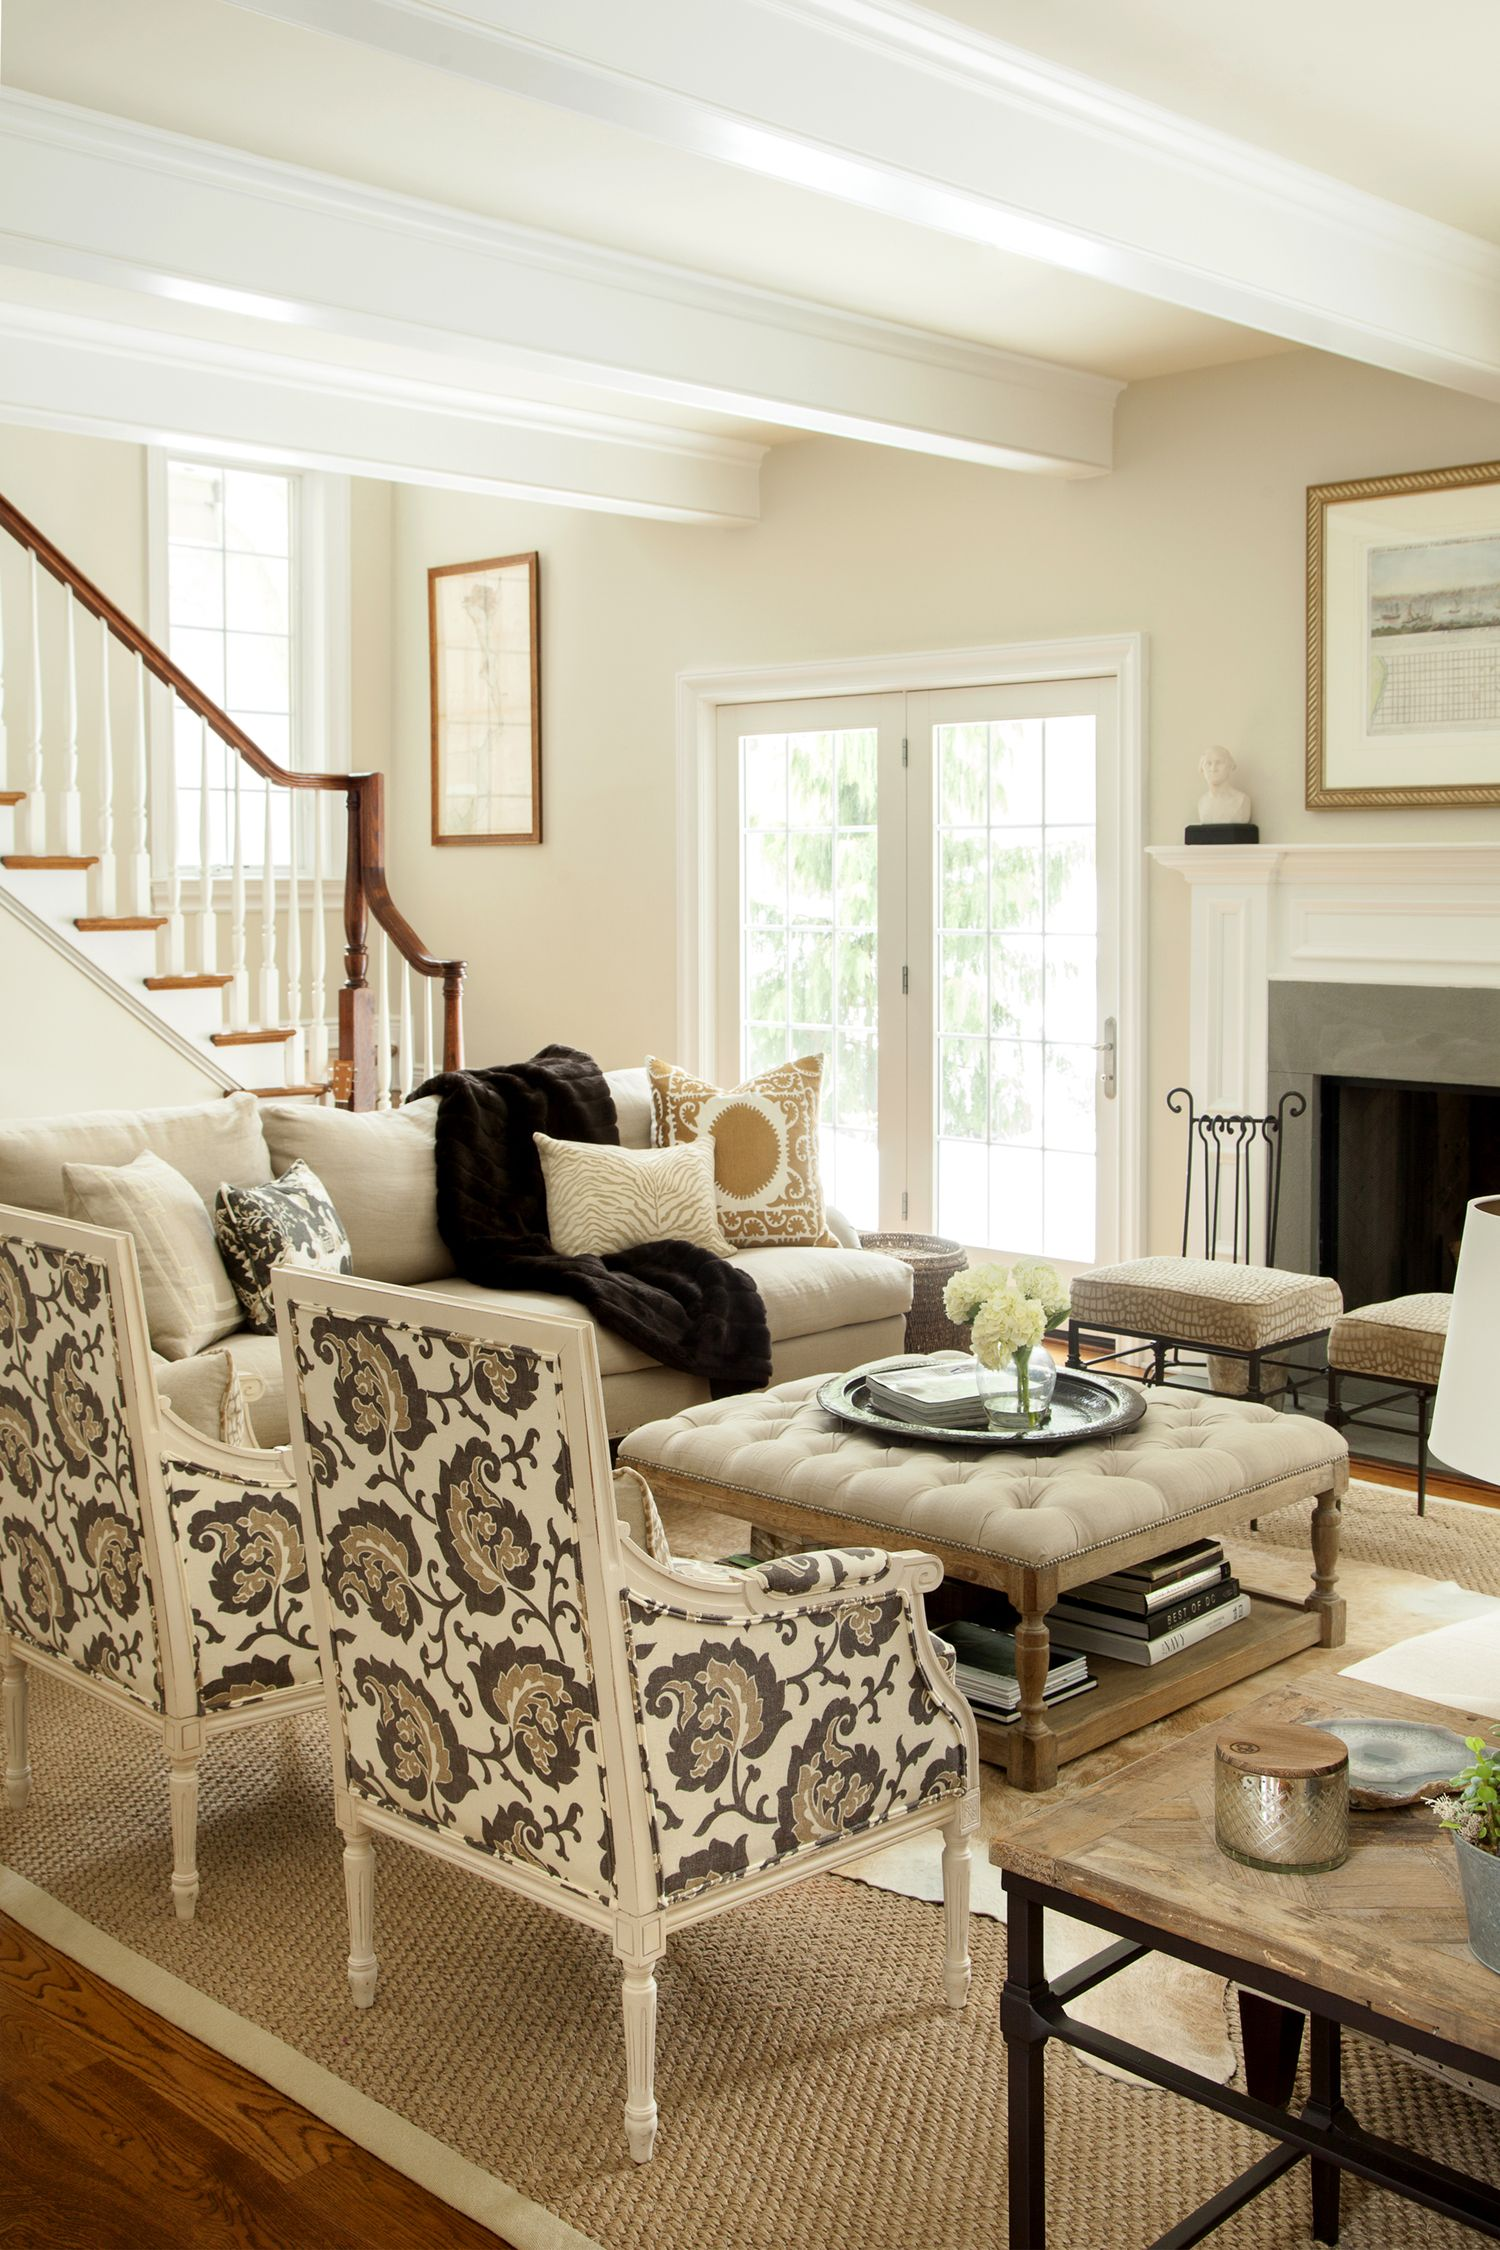 print chairs living room sears sofas neutral hip traditional large scale on two facing each other design manifest chestnut hill family